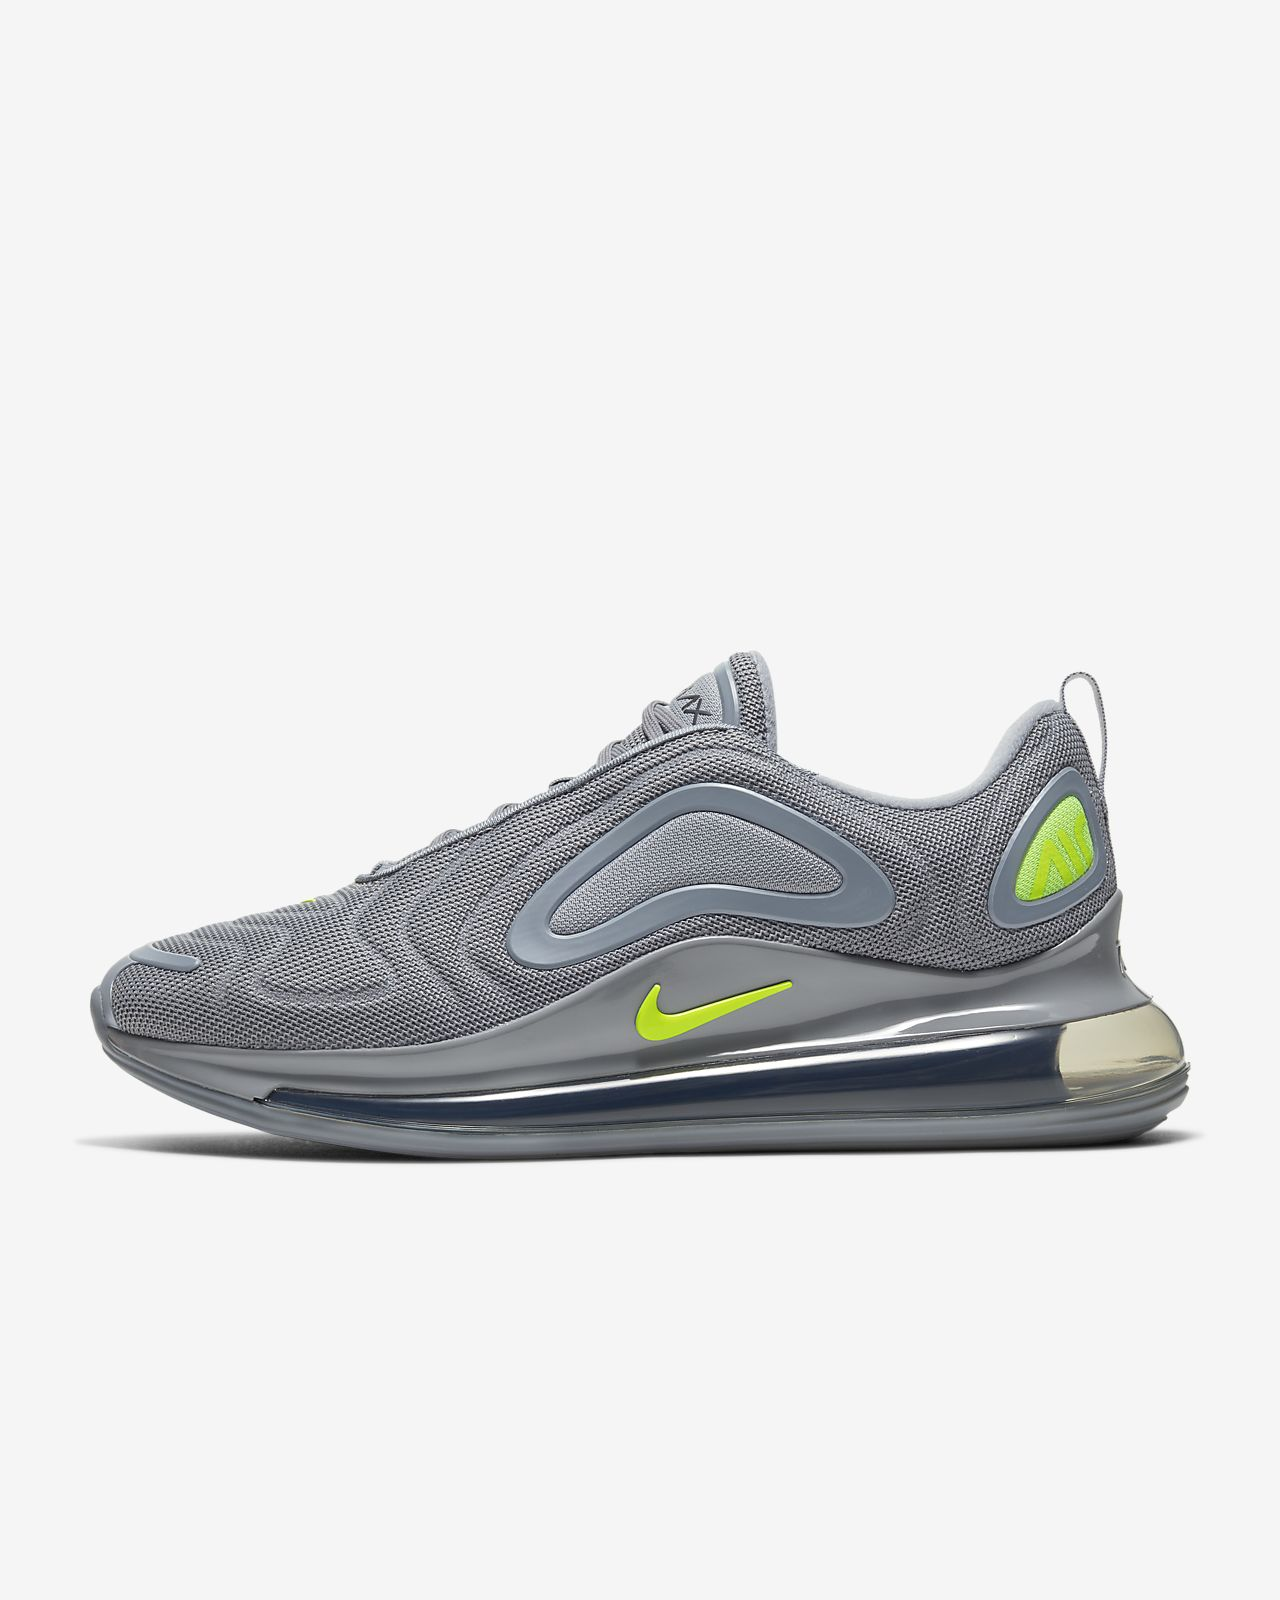 chaussures nike 720 femme